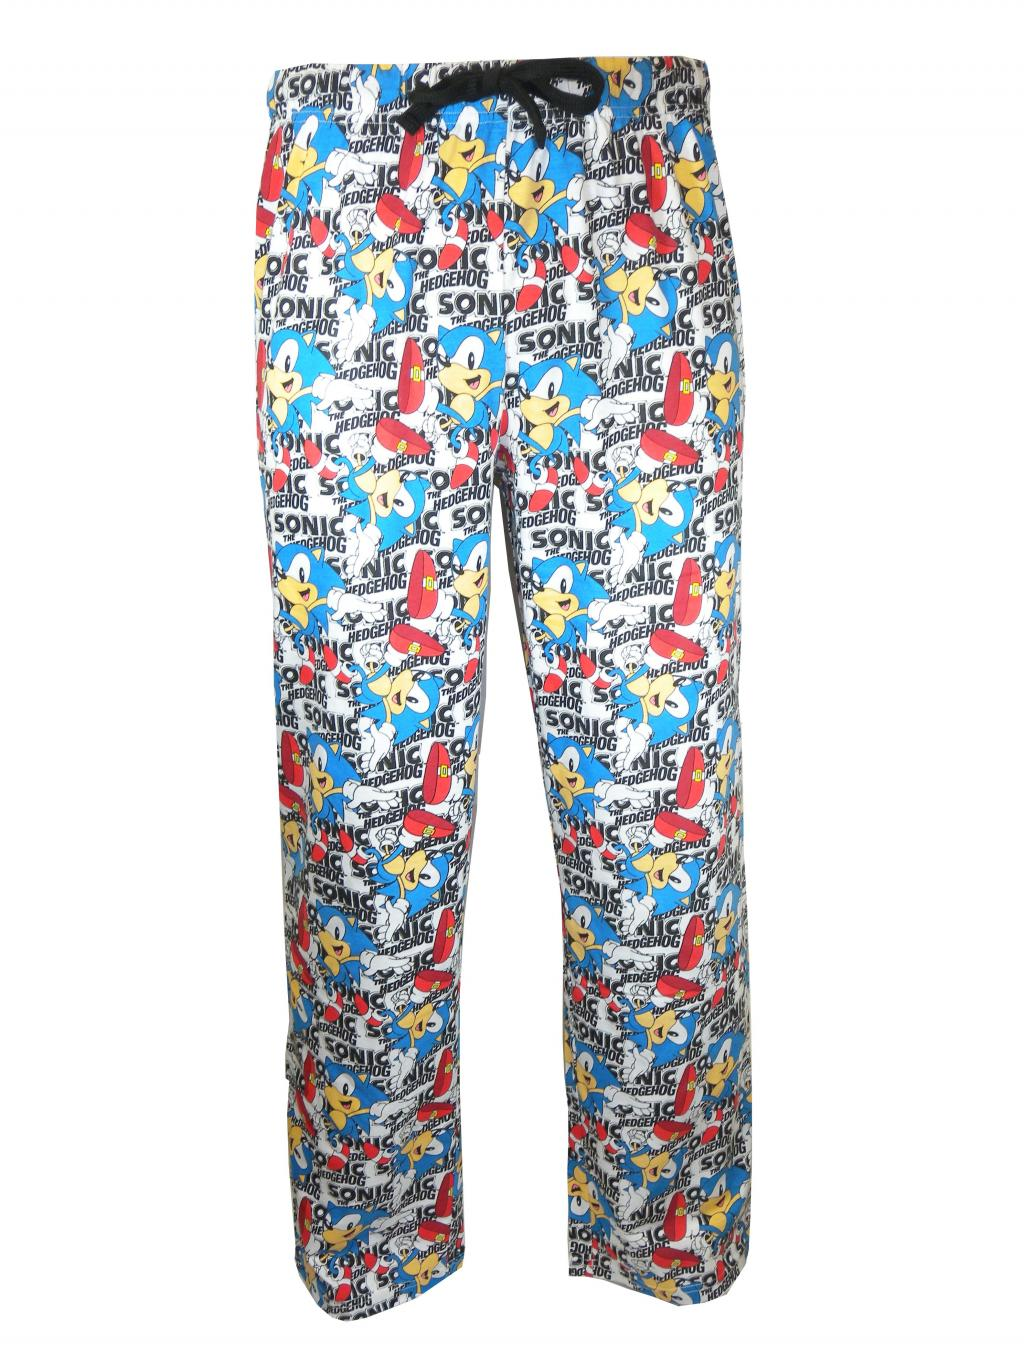 SONIC - Pantalon Pyjama - Black and White (S)